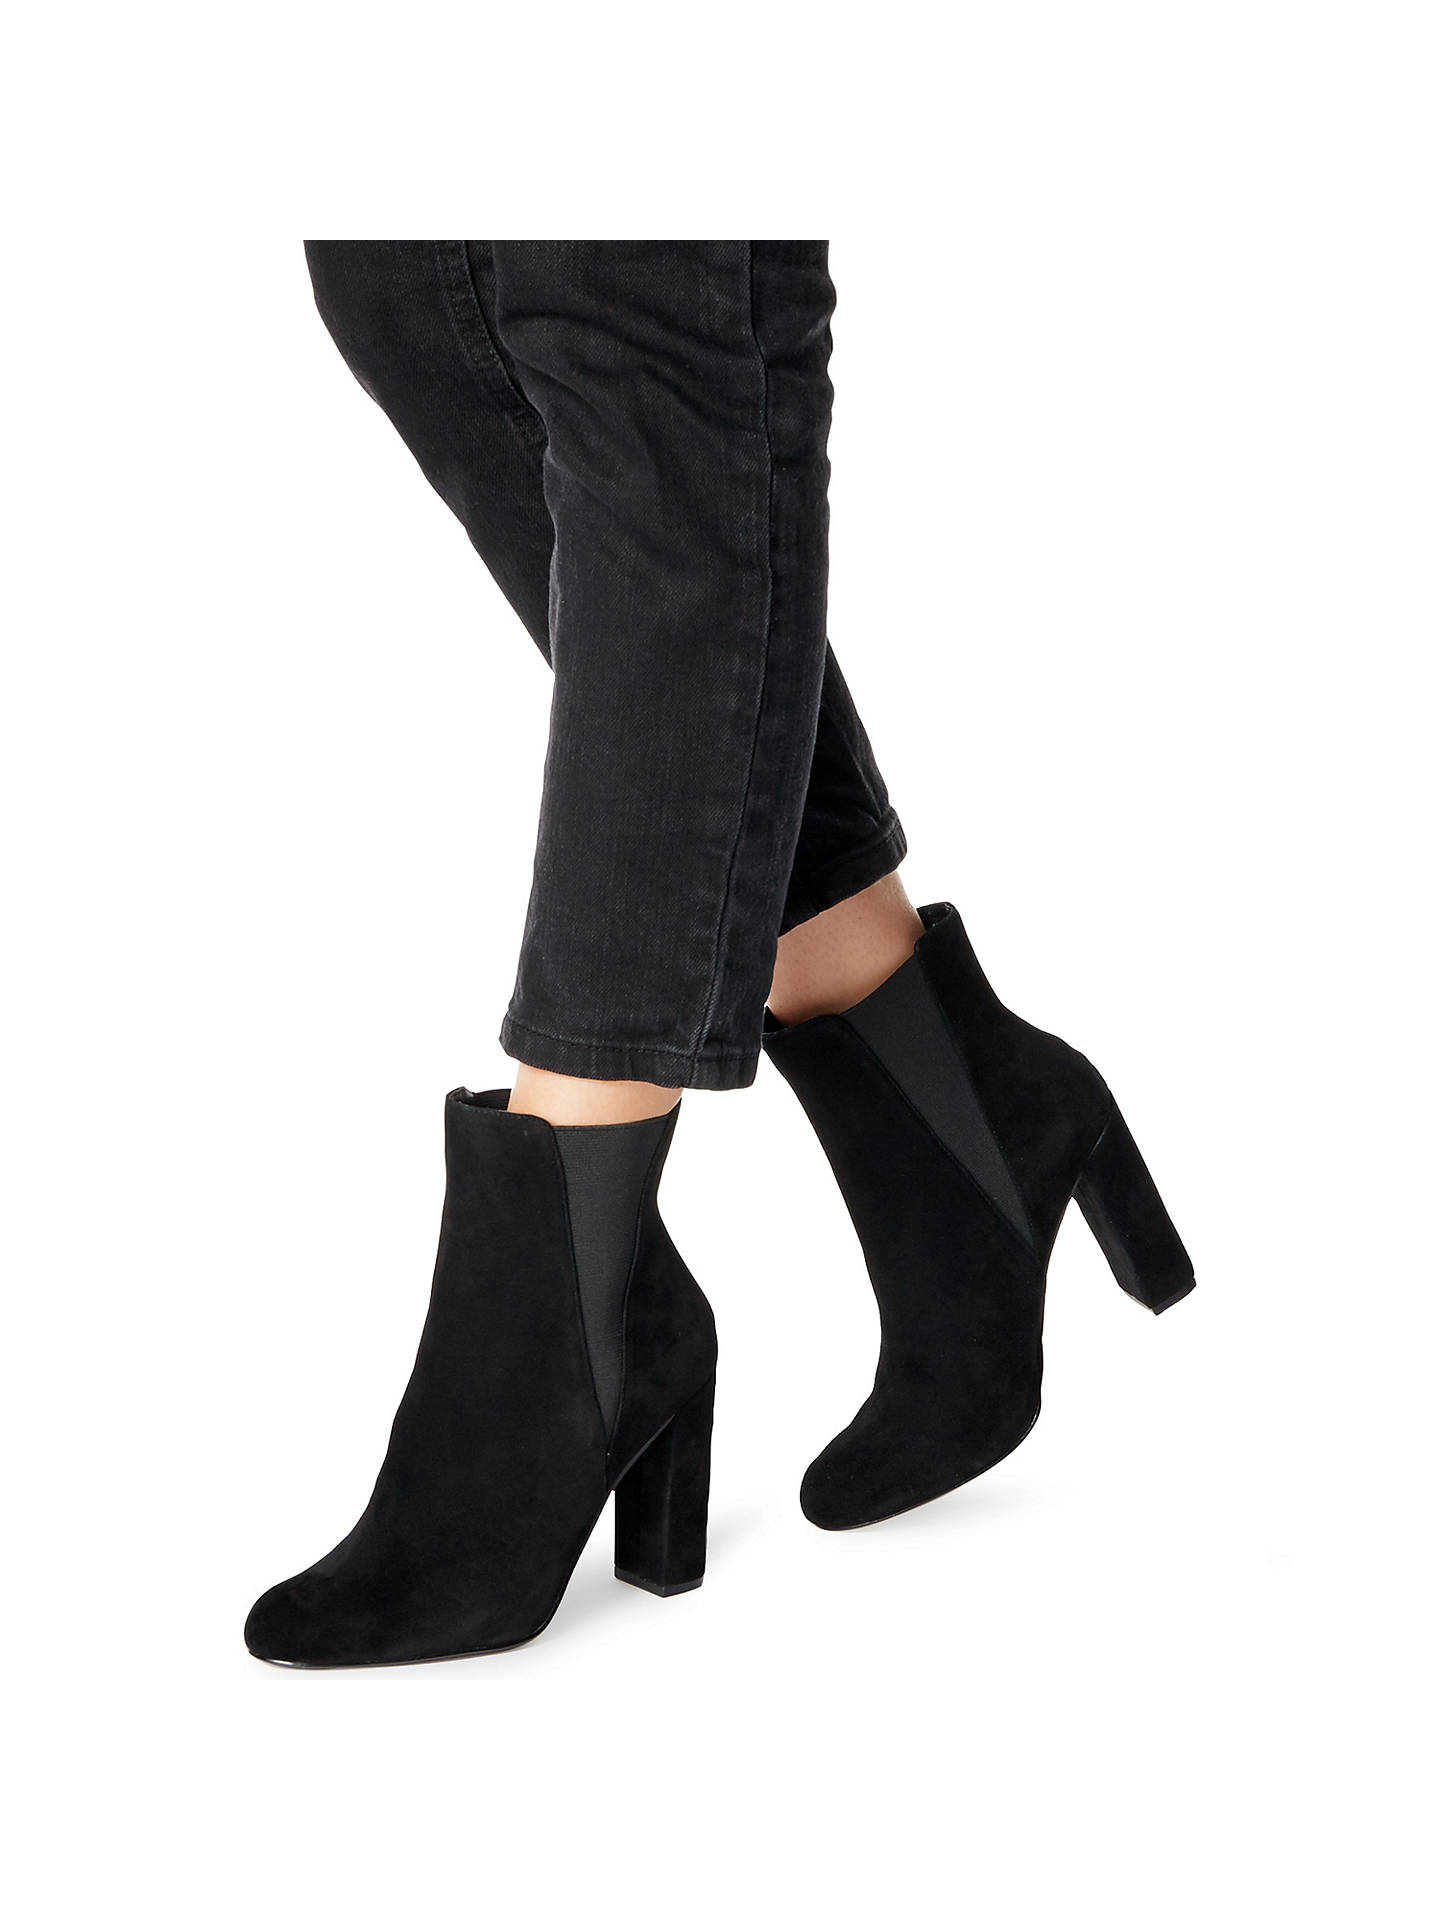 Respeto a ti mismo gloria a lo largo  Steve Madden Effect Block Heeled Ankle Boots, Black Suede at John Lewis &  Partners